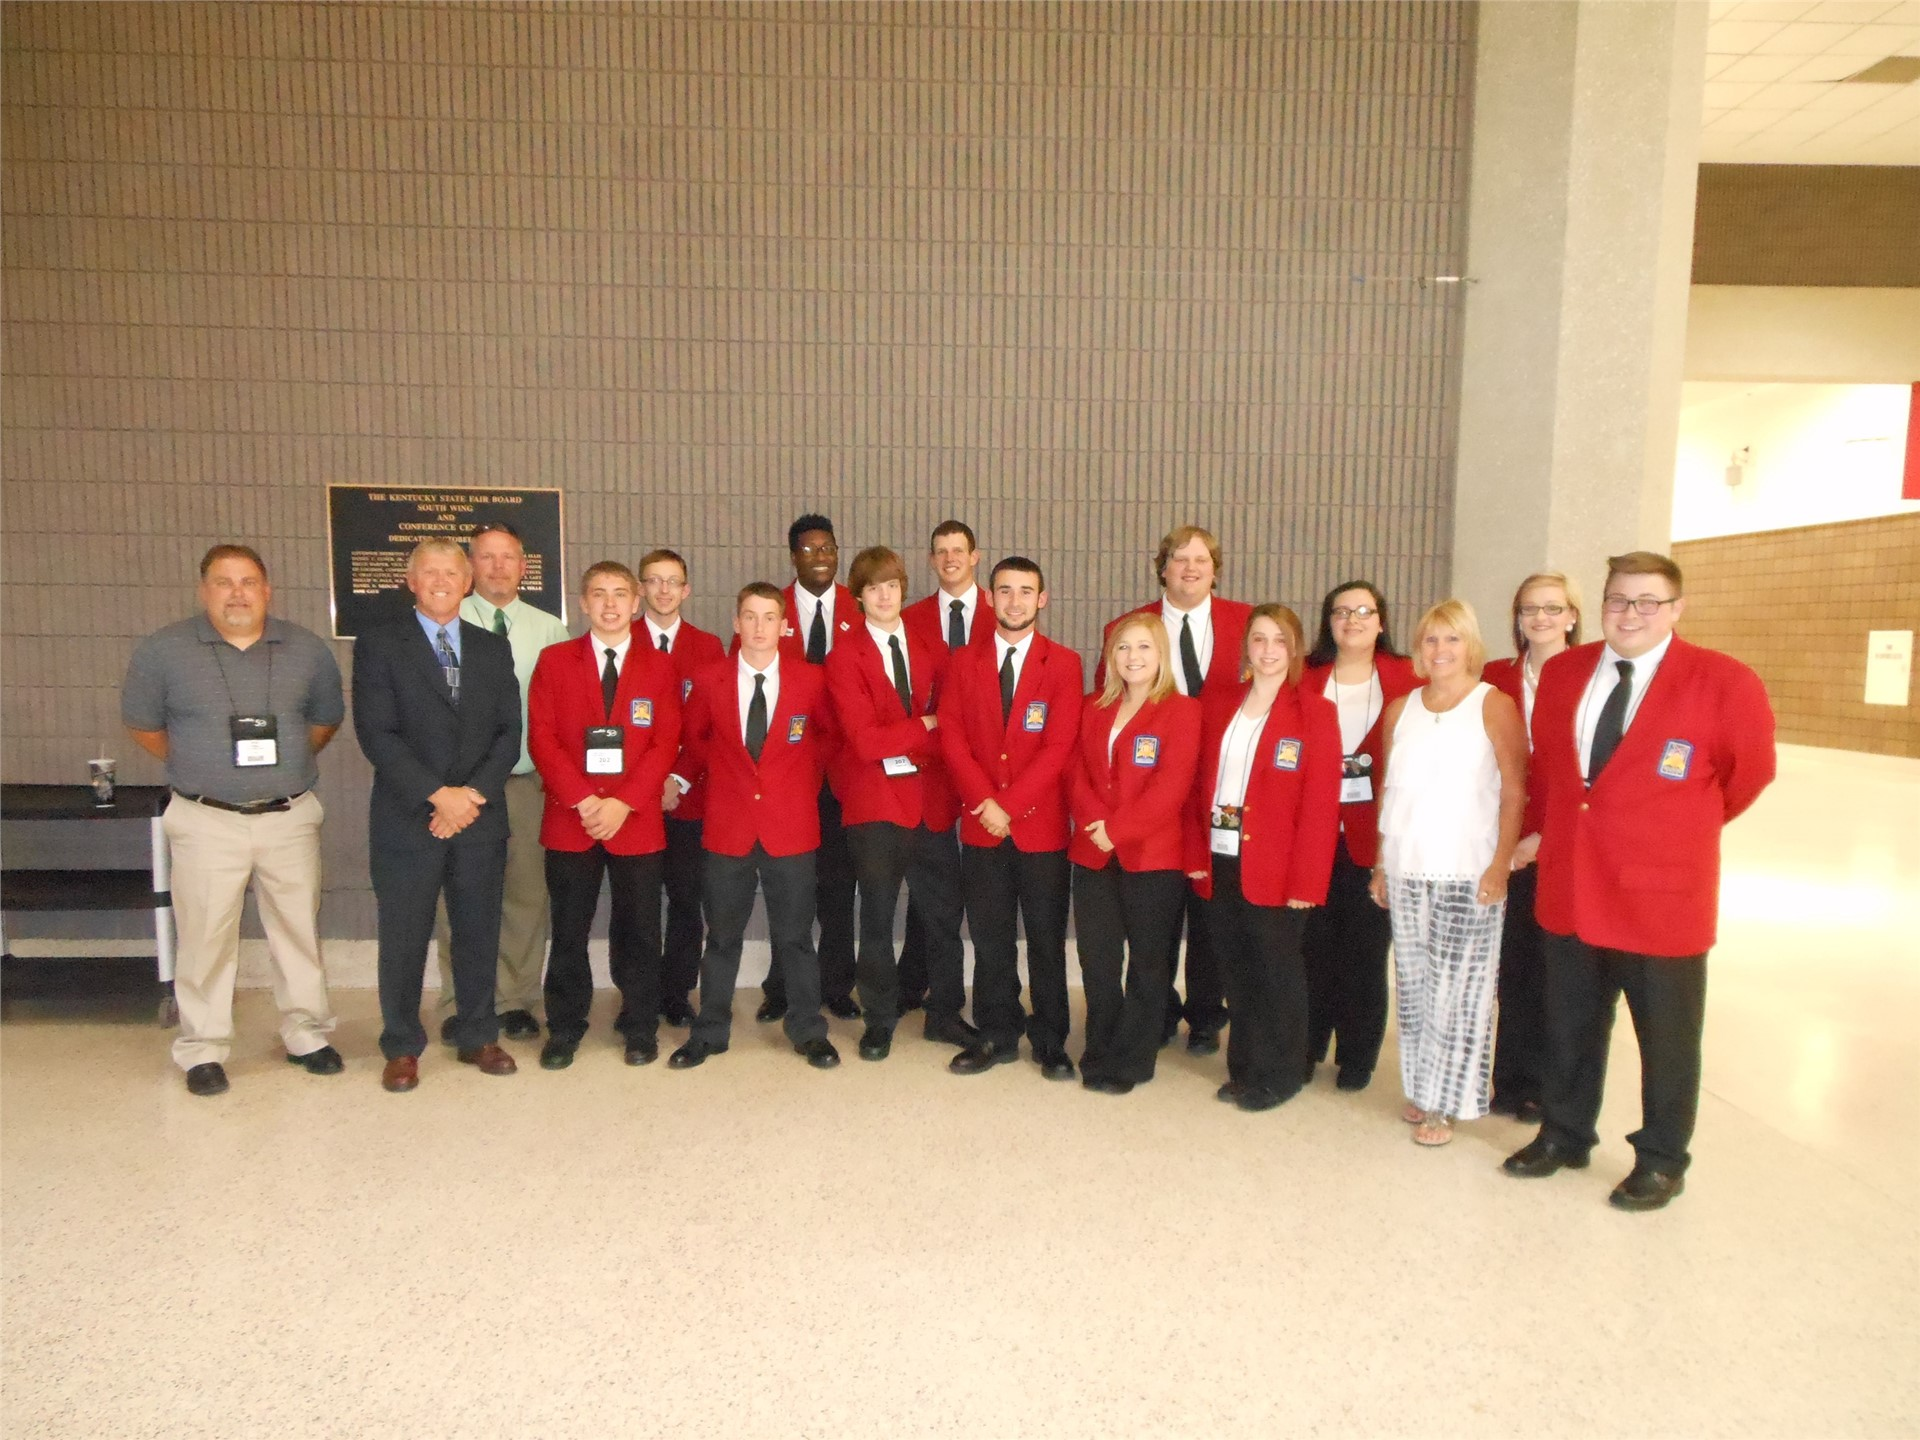 Penta Competitors and Staff at the National SkillsUSA Contest